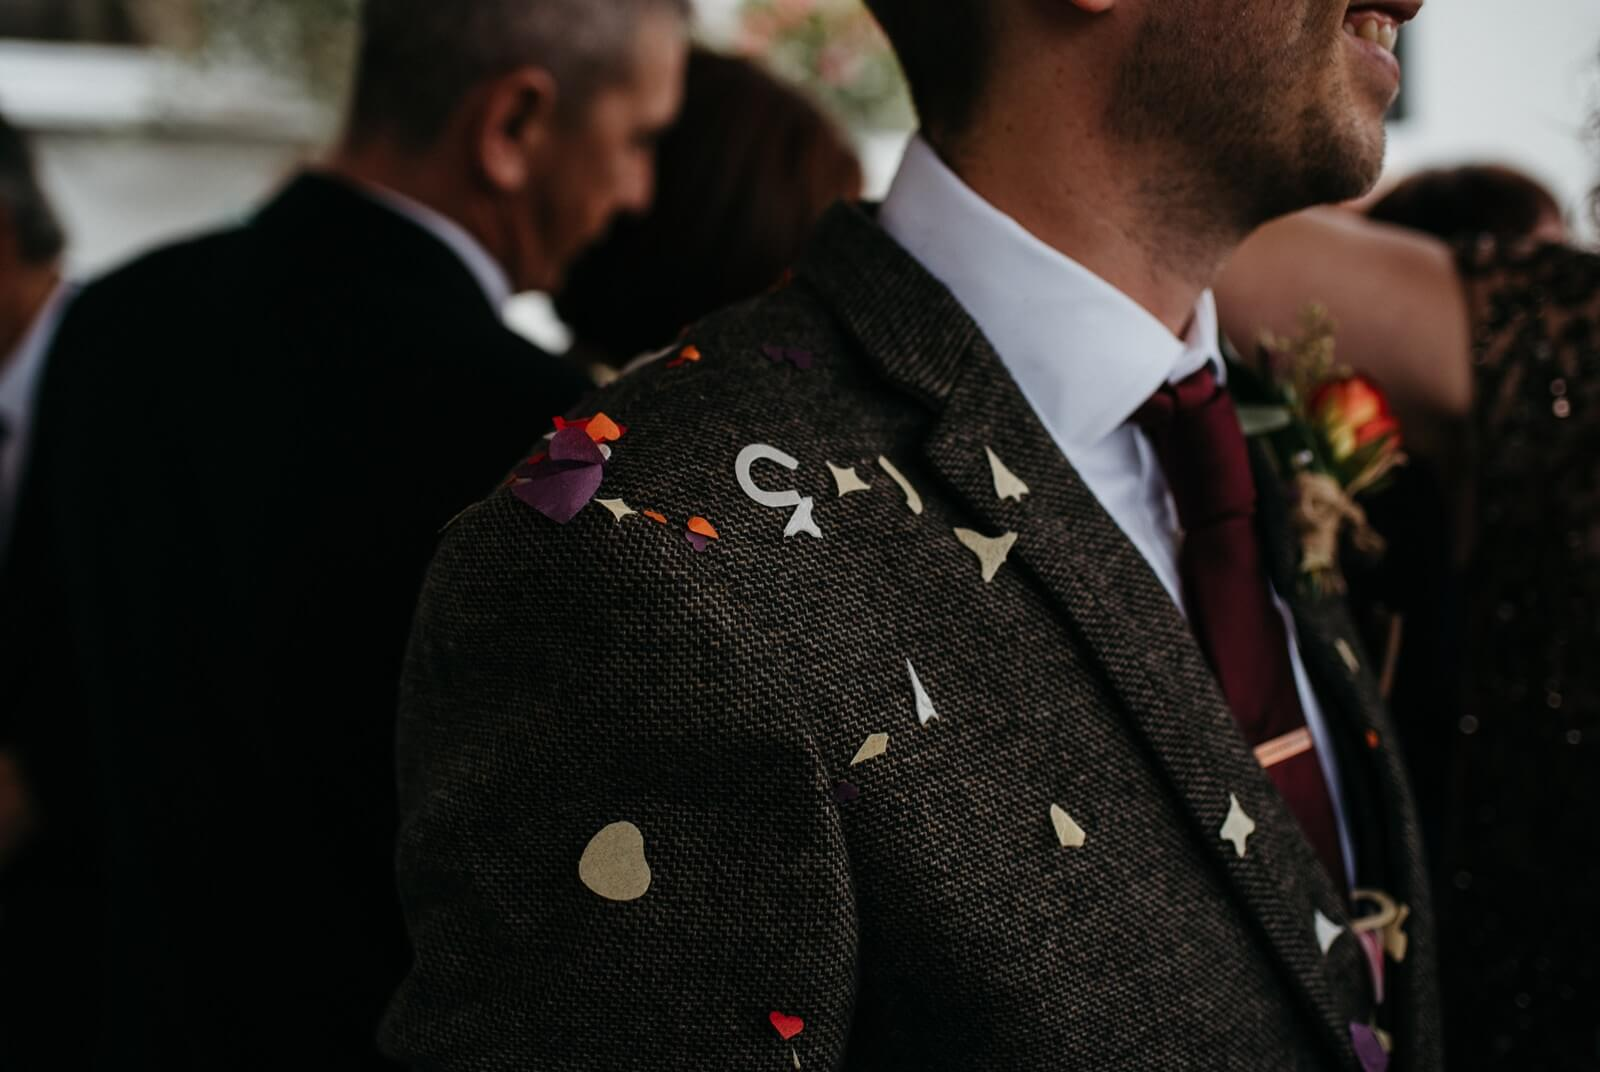 Flecks of confetti left on Cardiff grooms suit after gauntlet at Ty Mawr